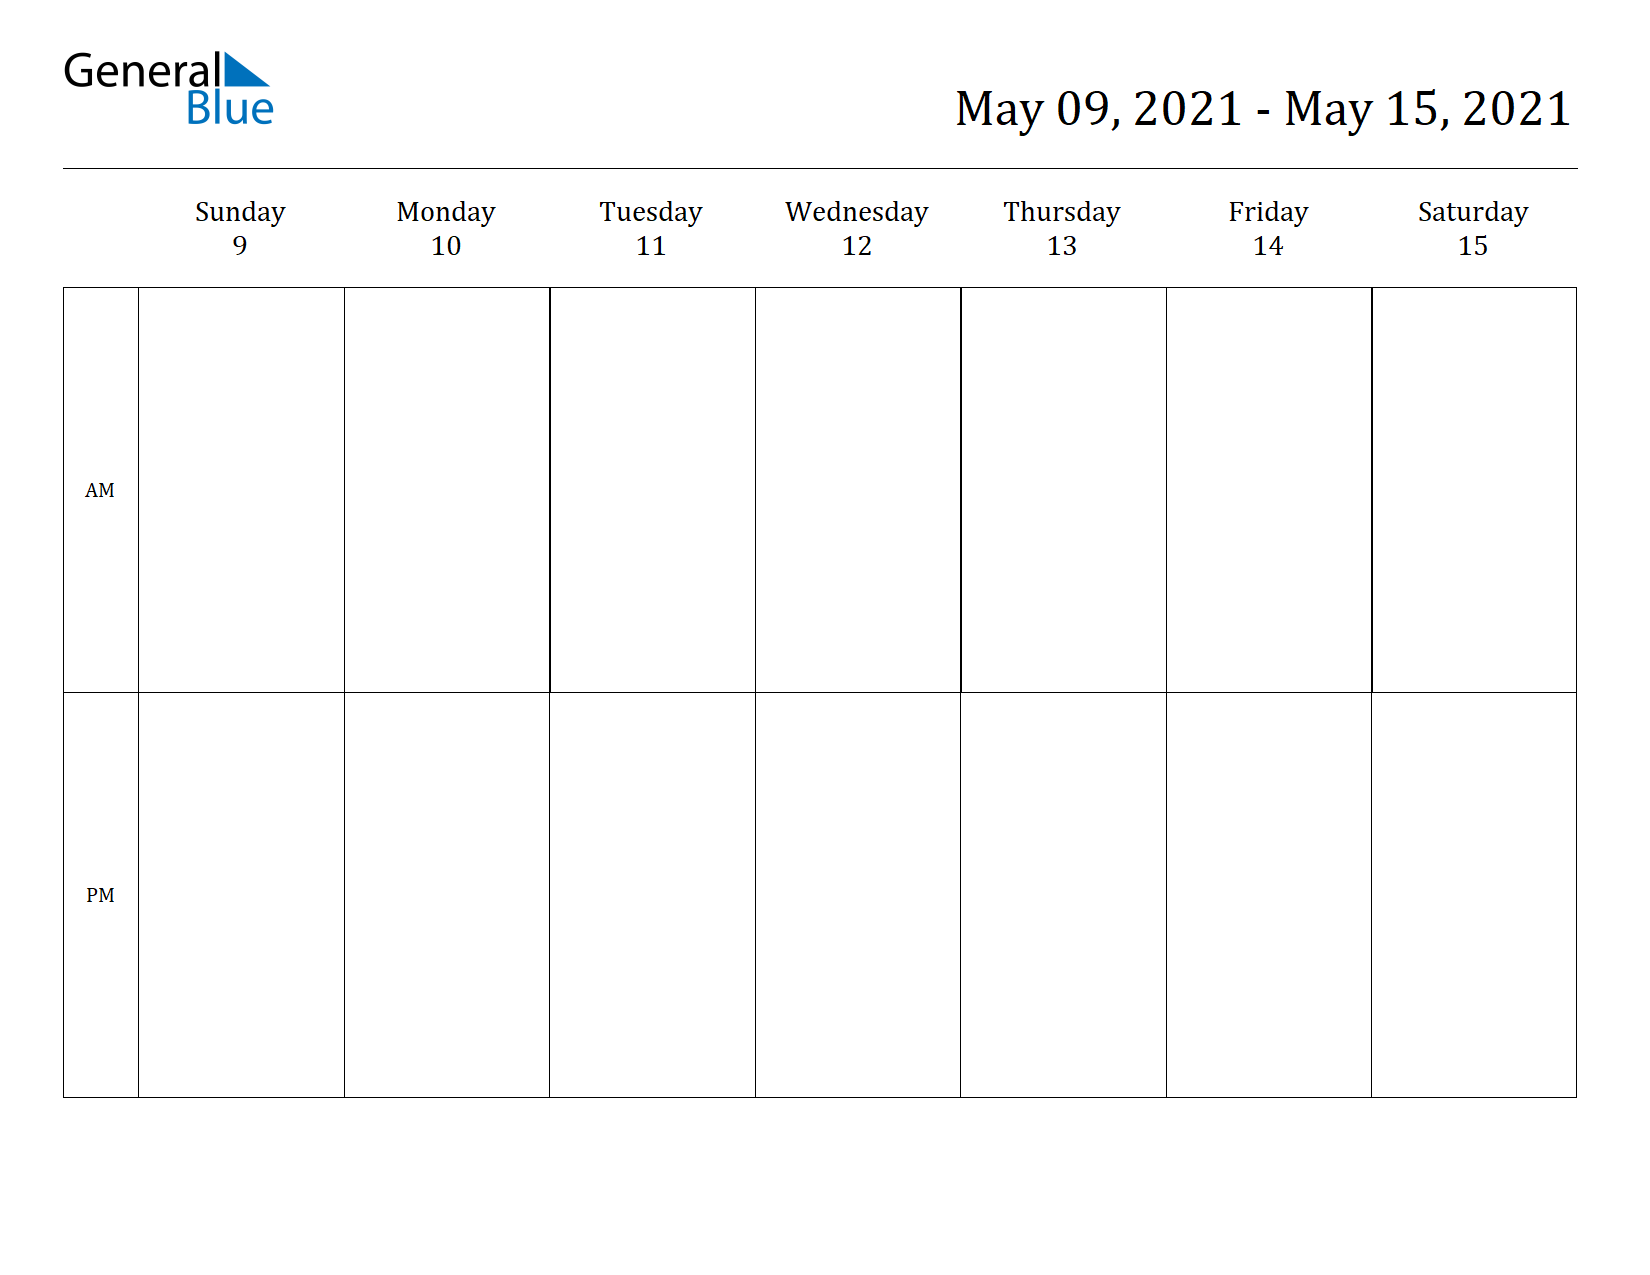 Weekly Calendar for May 09, 2021 to May 15, 2021